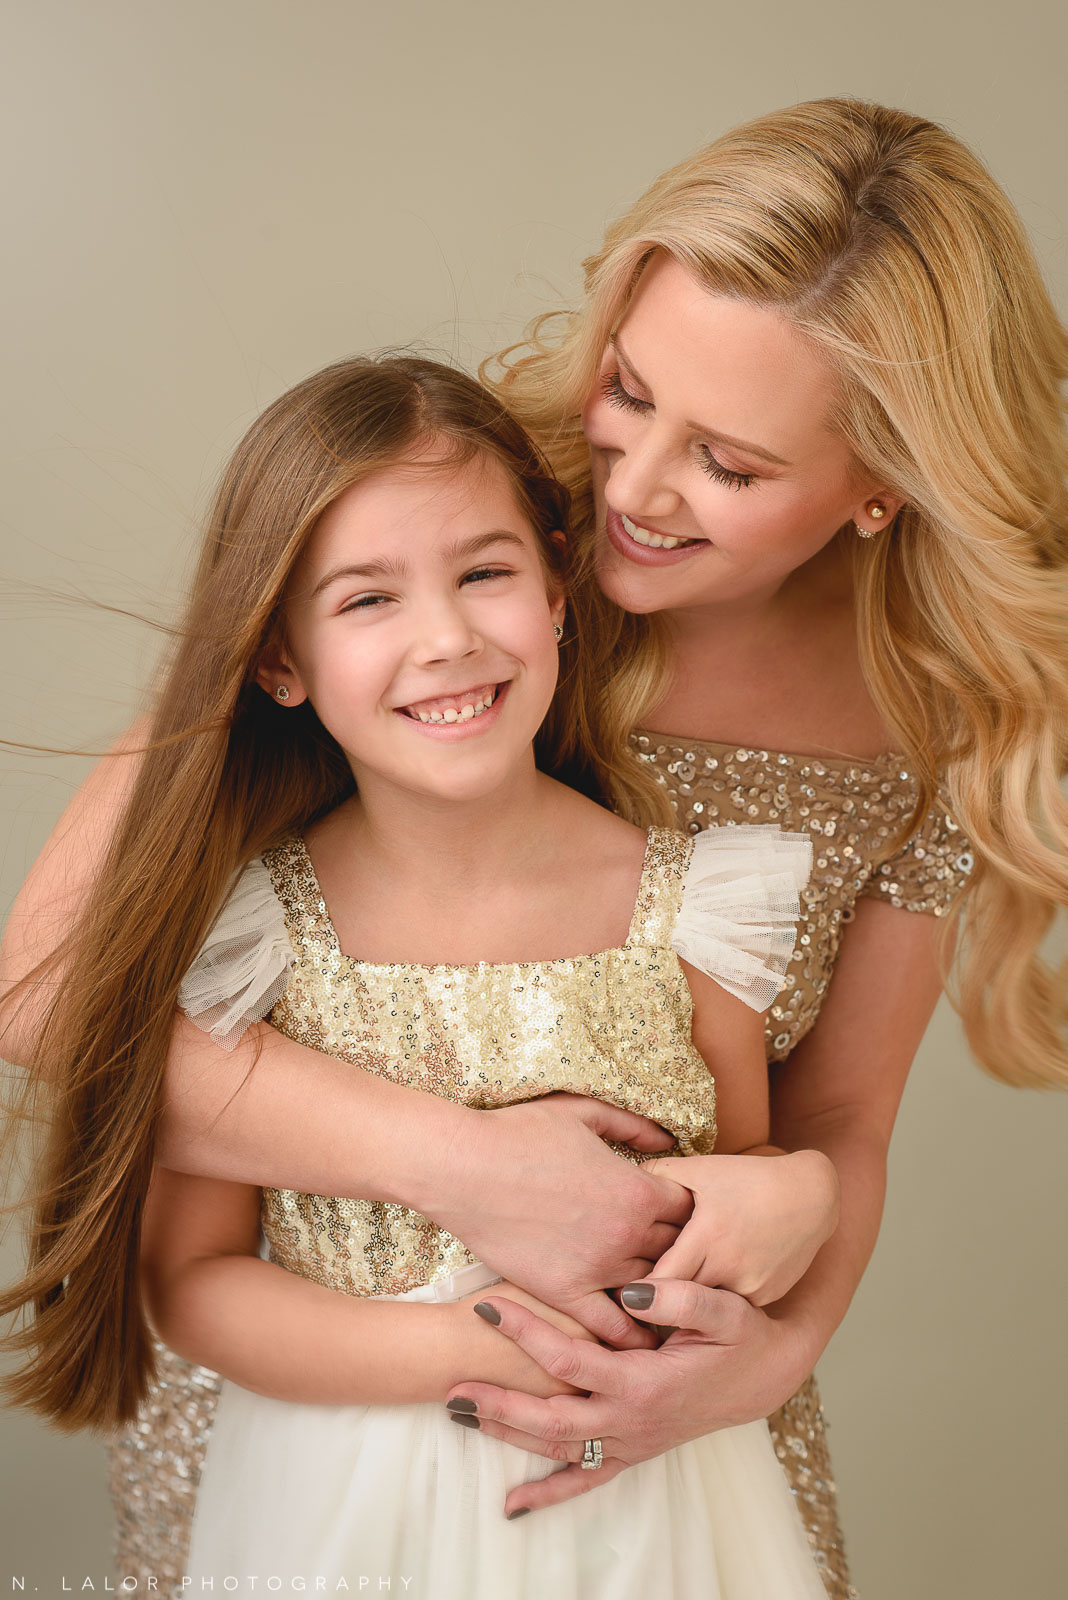 Image of a mother and daughter laughing together. Studio portrait by N. Lalor Photography in Greenwich, Connecticut.